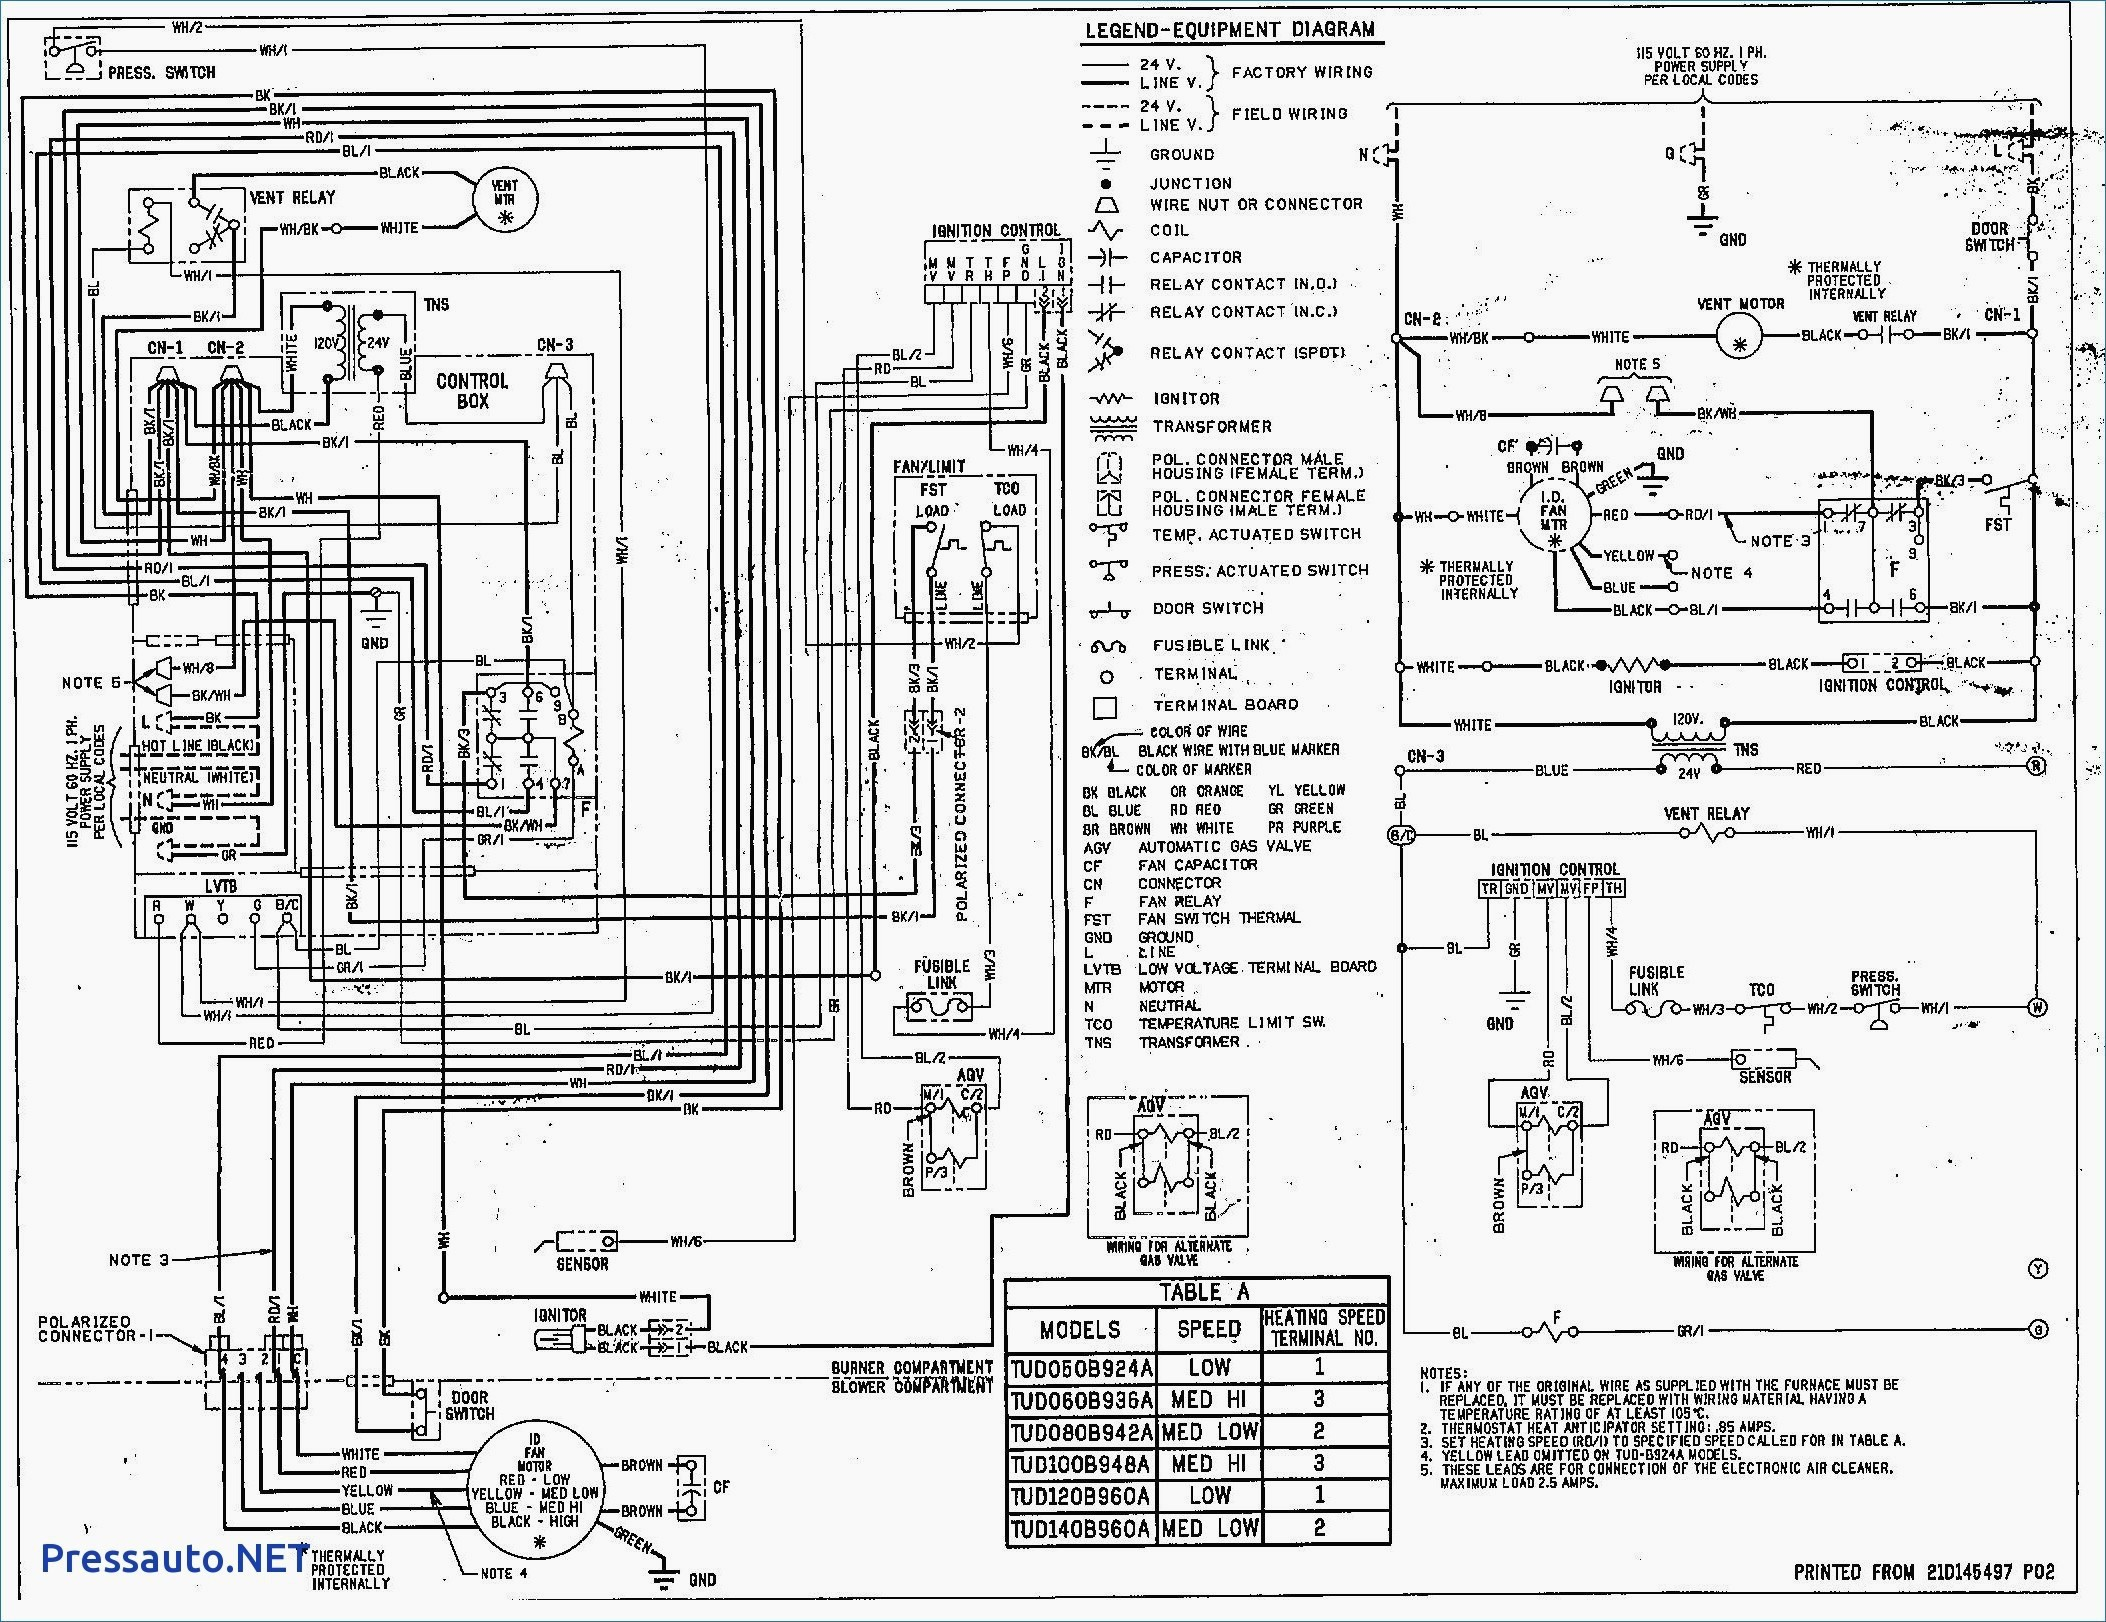 Wiring Diagram Alarm Mobil Raiton Trusted Diagrams Guide Circuit On